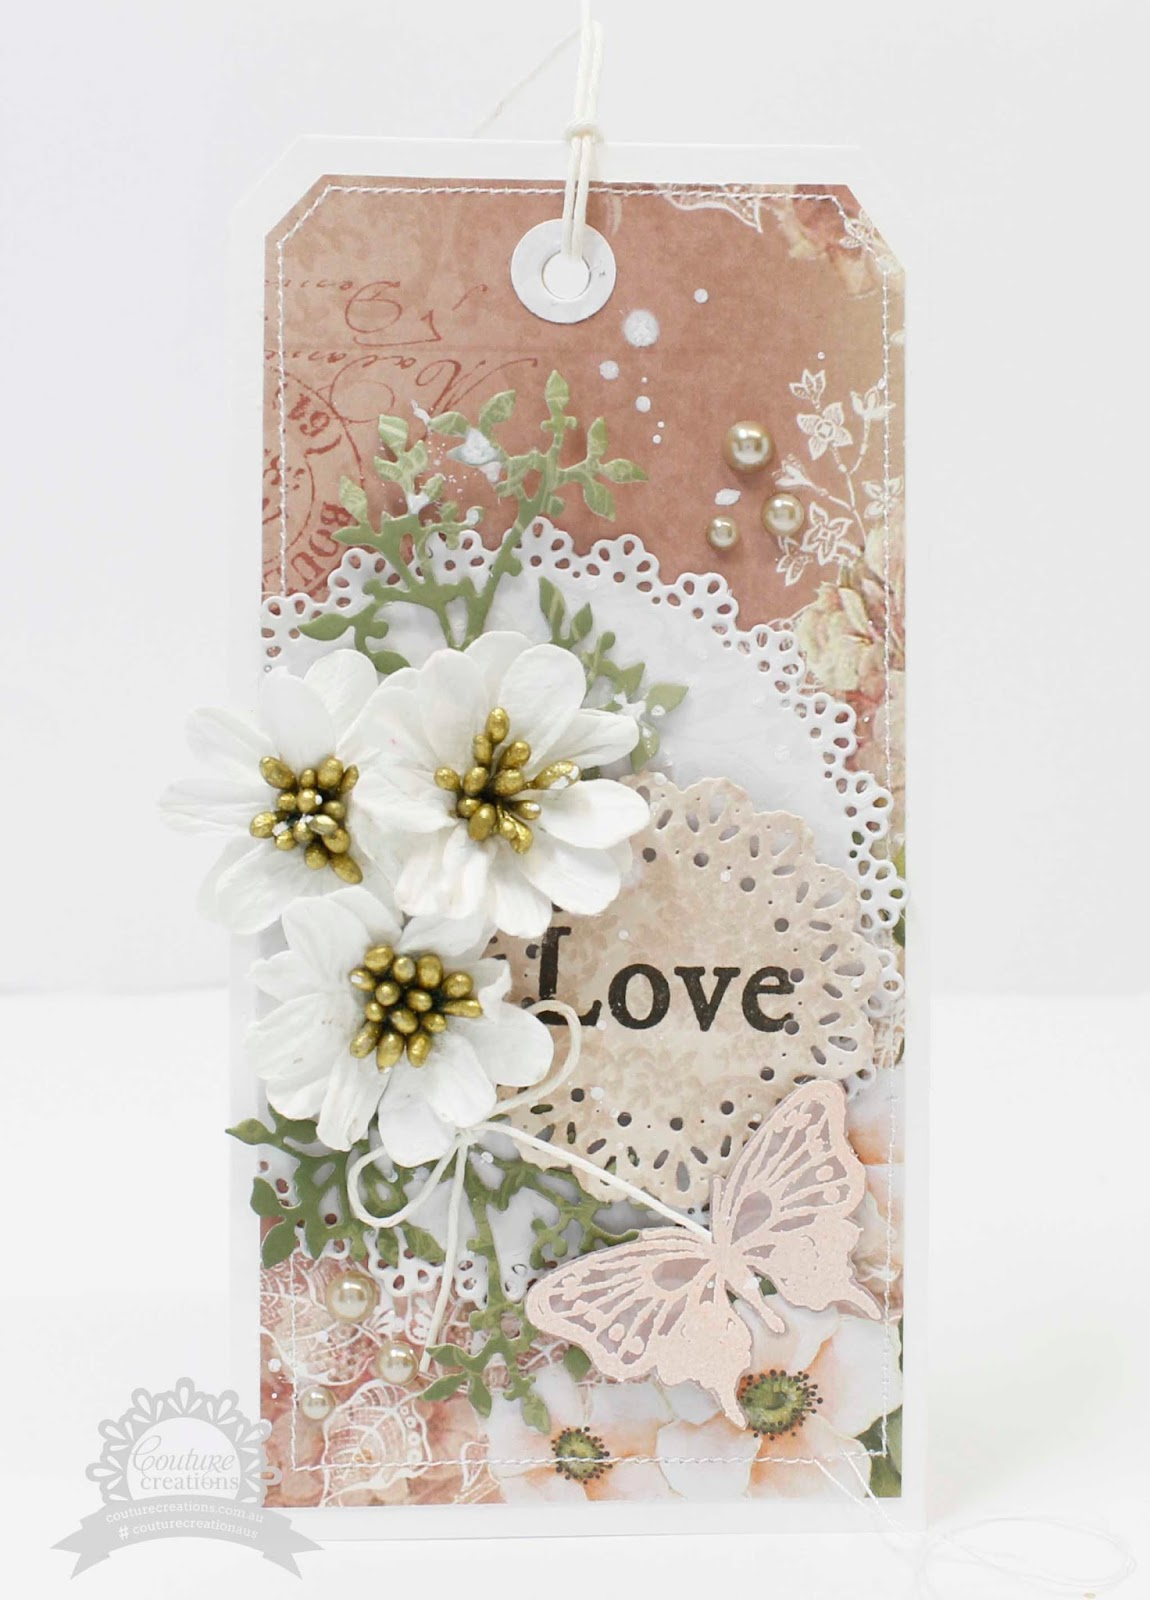 Rose Garden Creations: Neat And Crafty: Hope And Love Tags